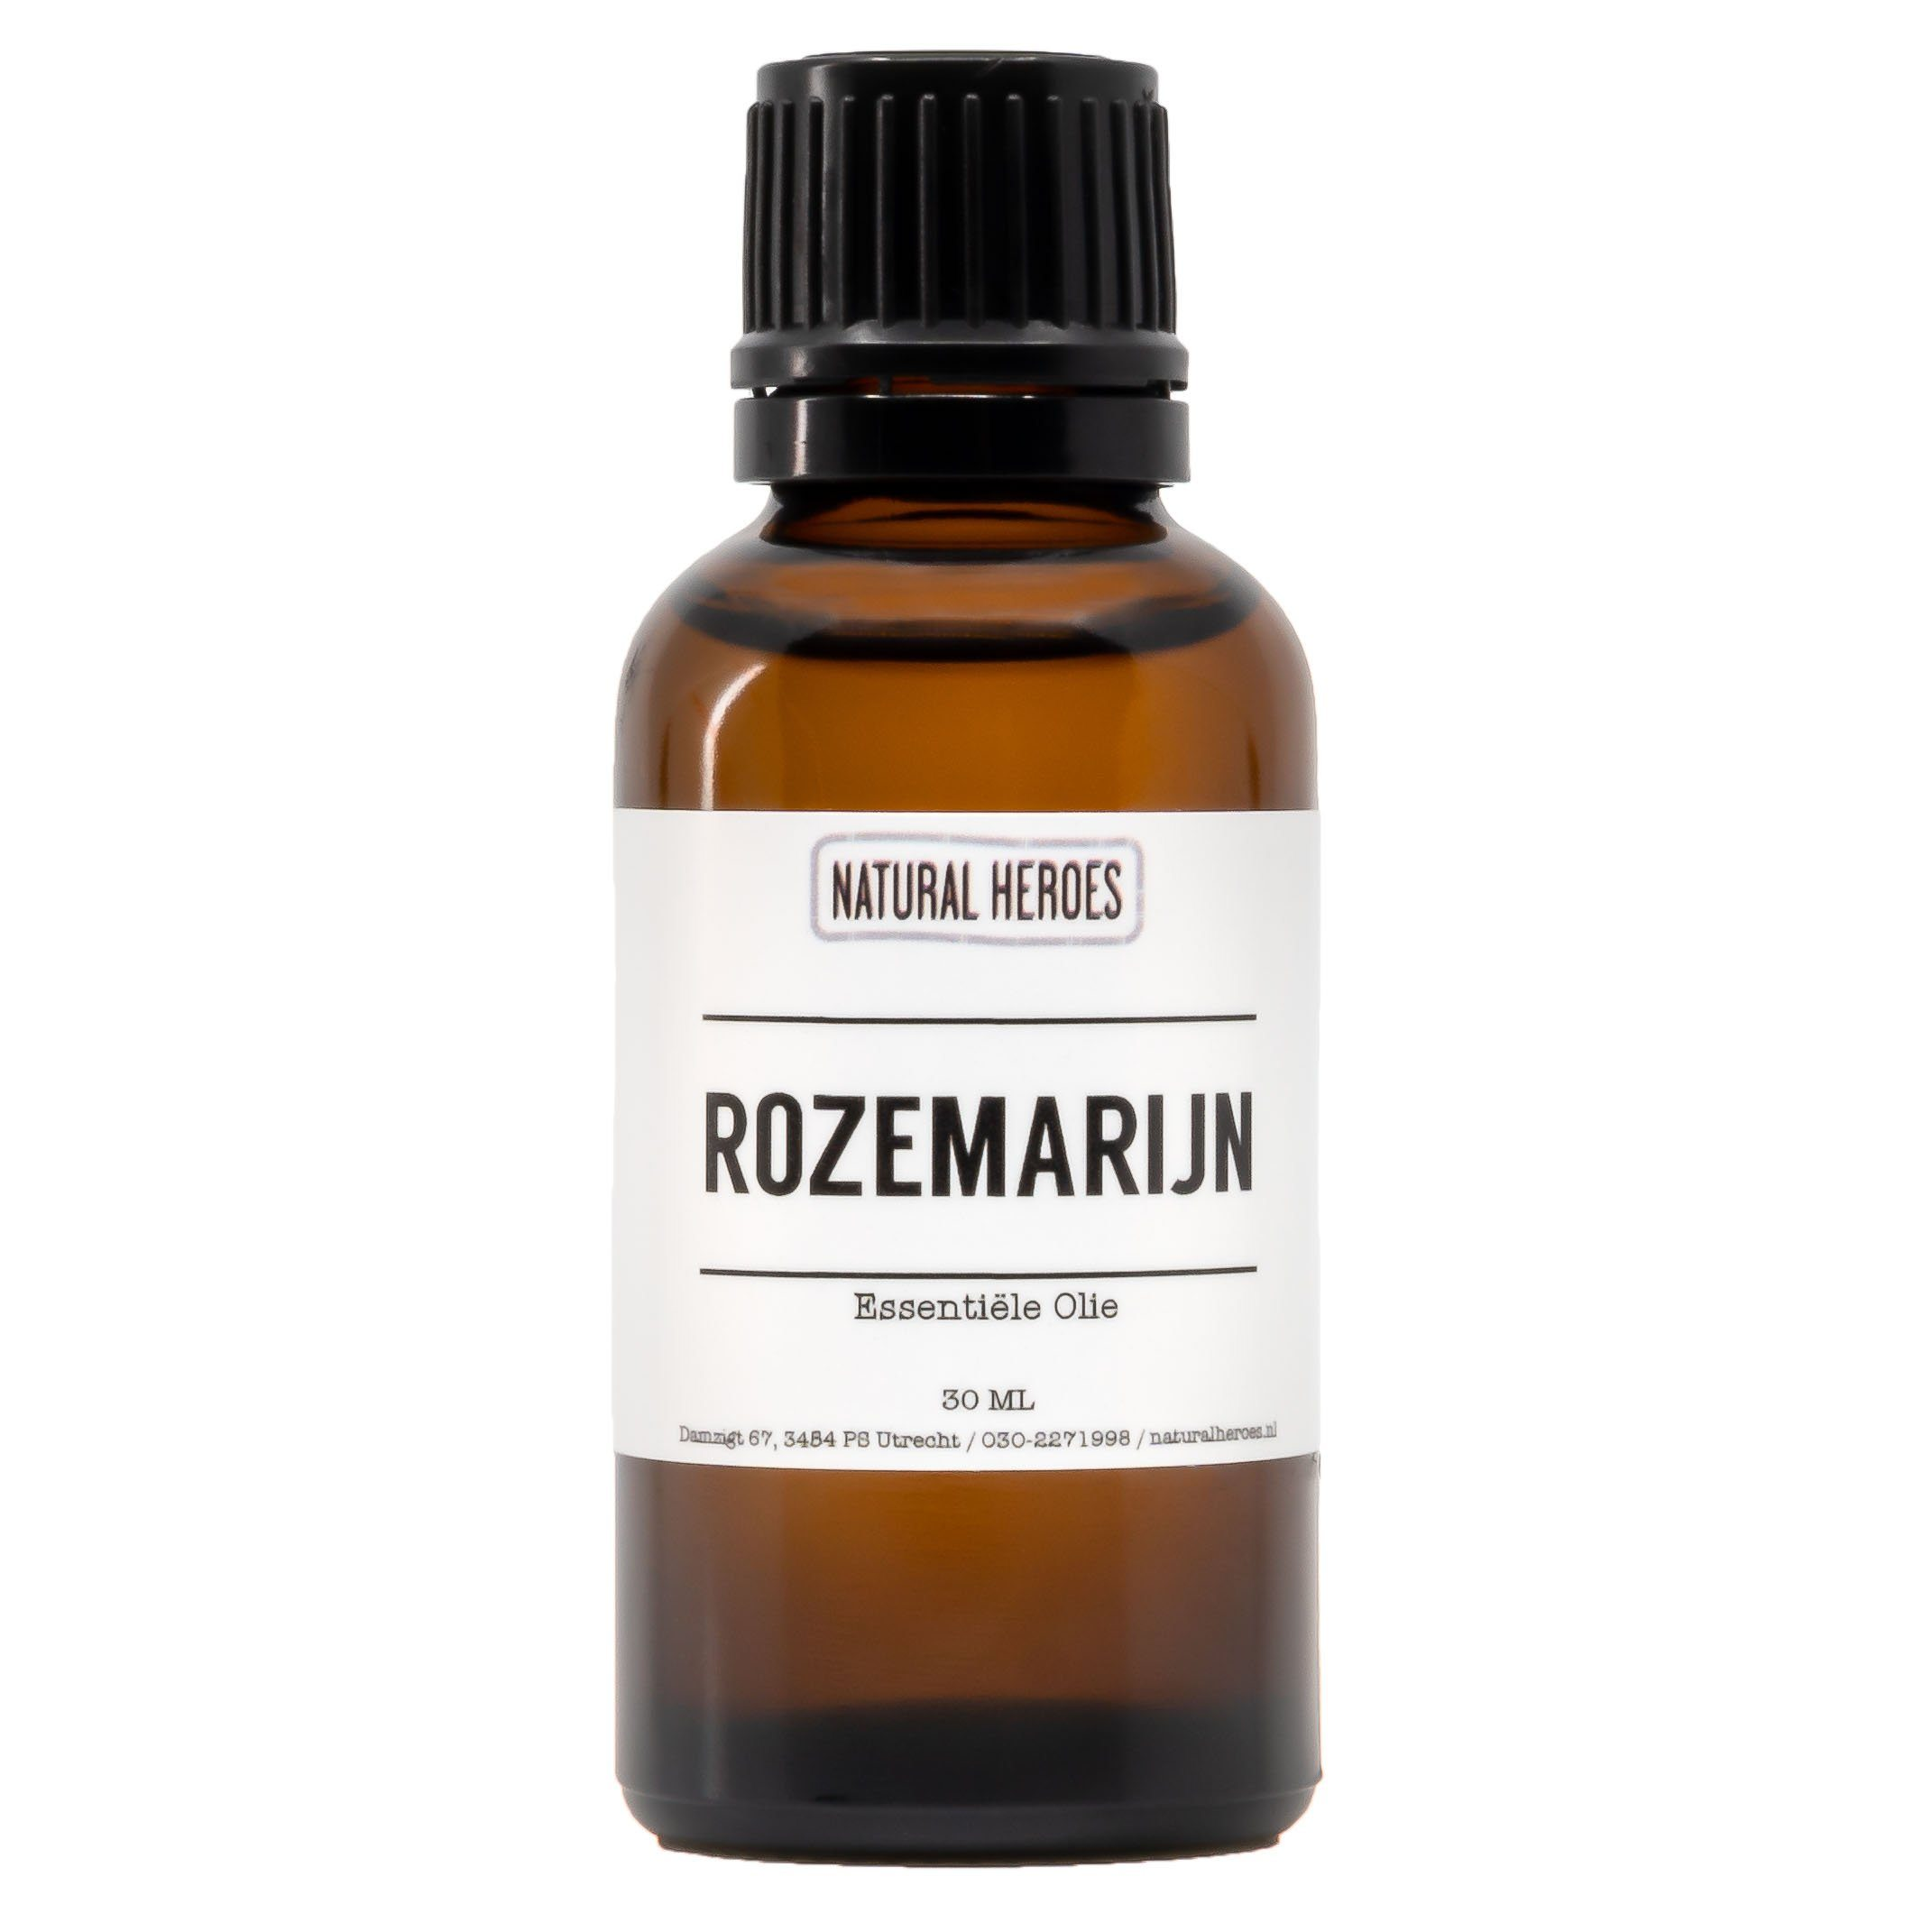 Rozemarijn Essentiële Olie Natural Heroes 30 ml